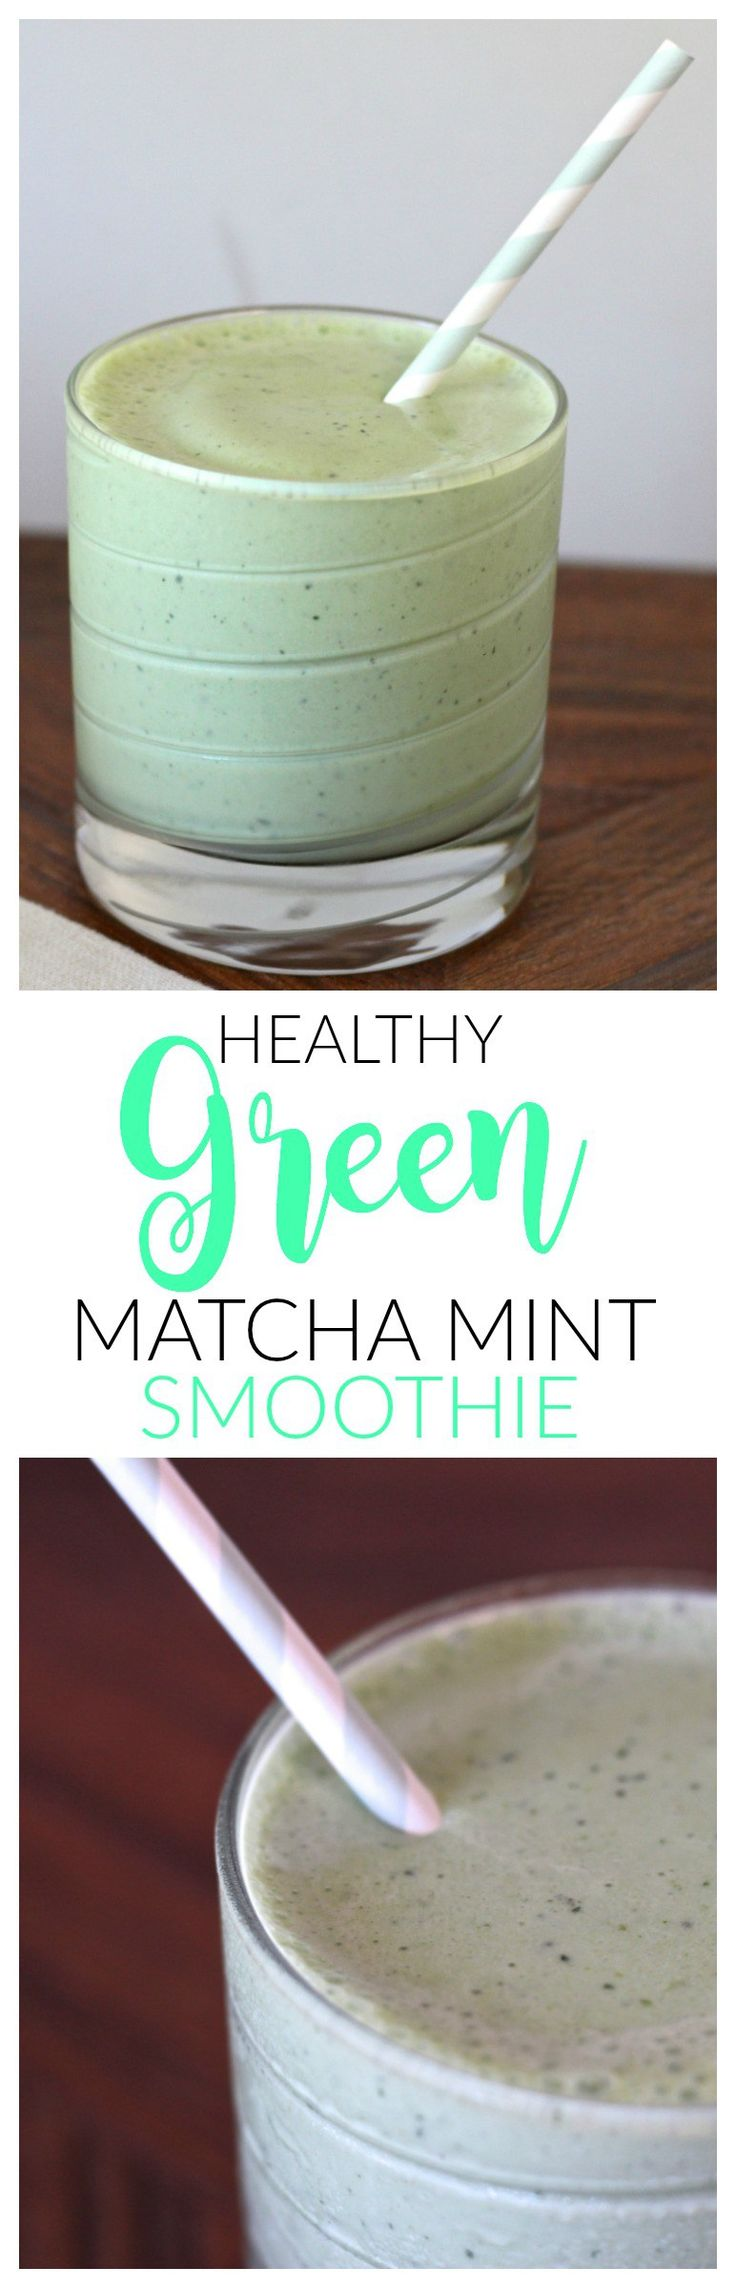 healthy green matcha mint smoothie